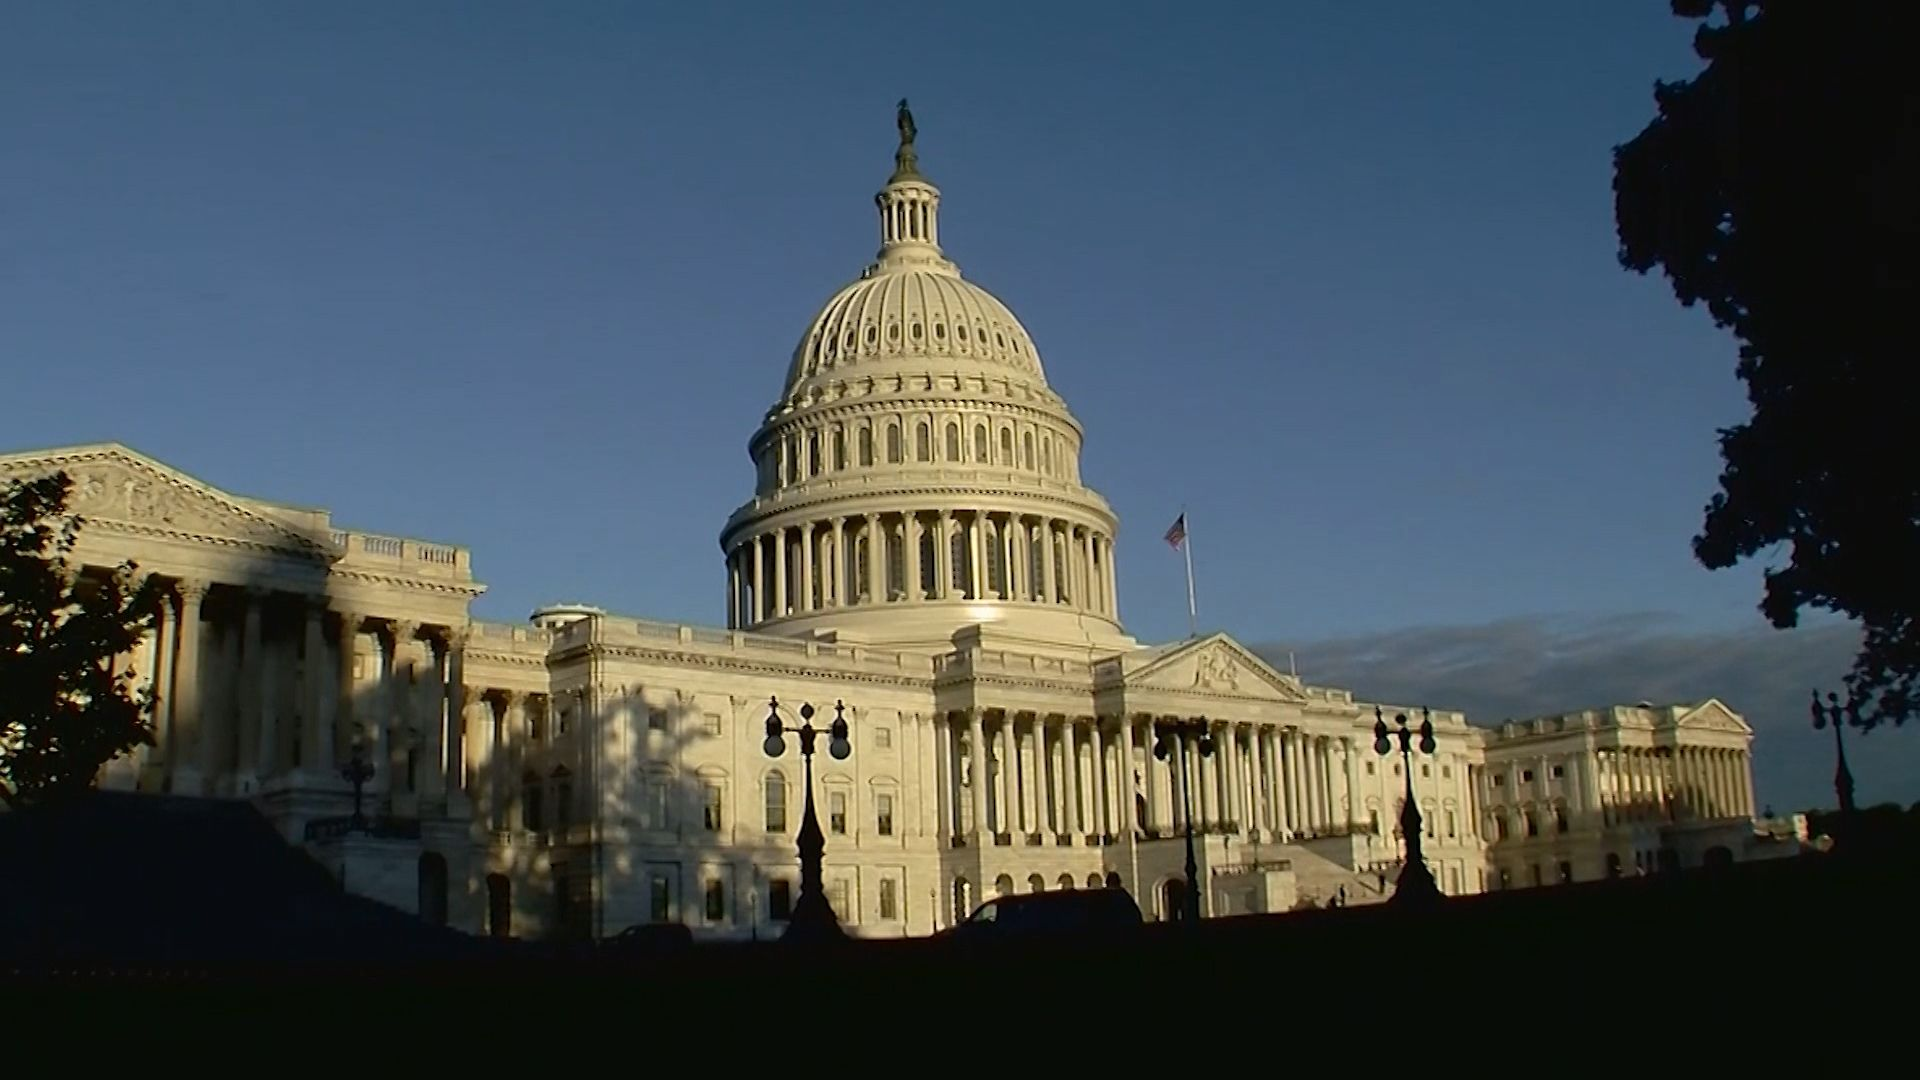 All 9 Massachusetts members of US House vote in favor of $1.9 trillion COVID-19 stimulus bill